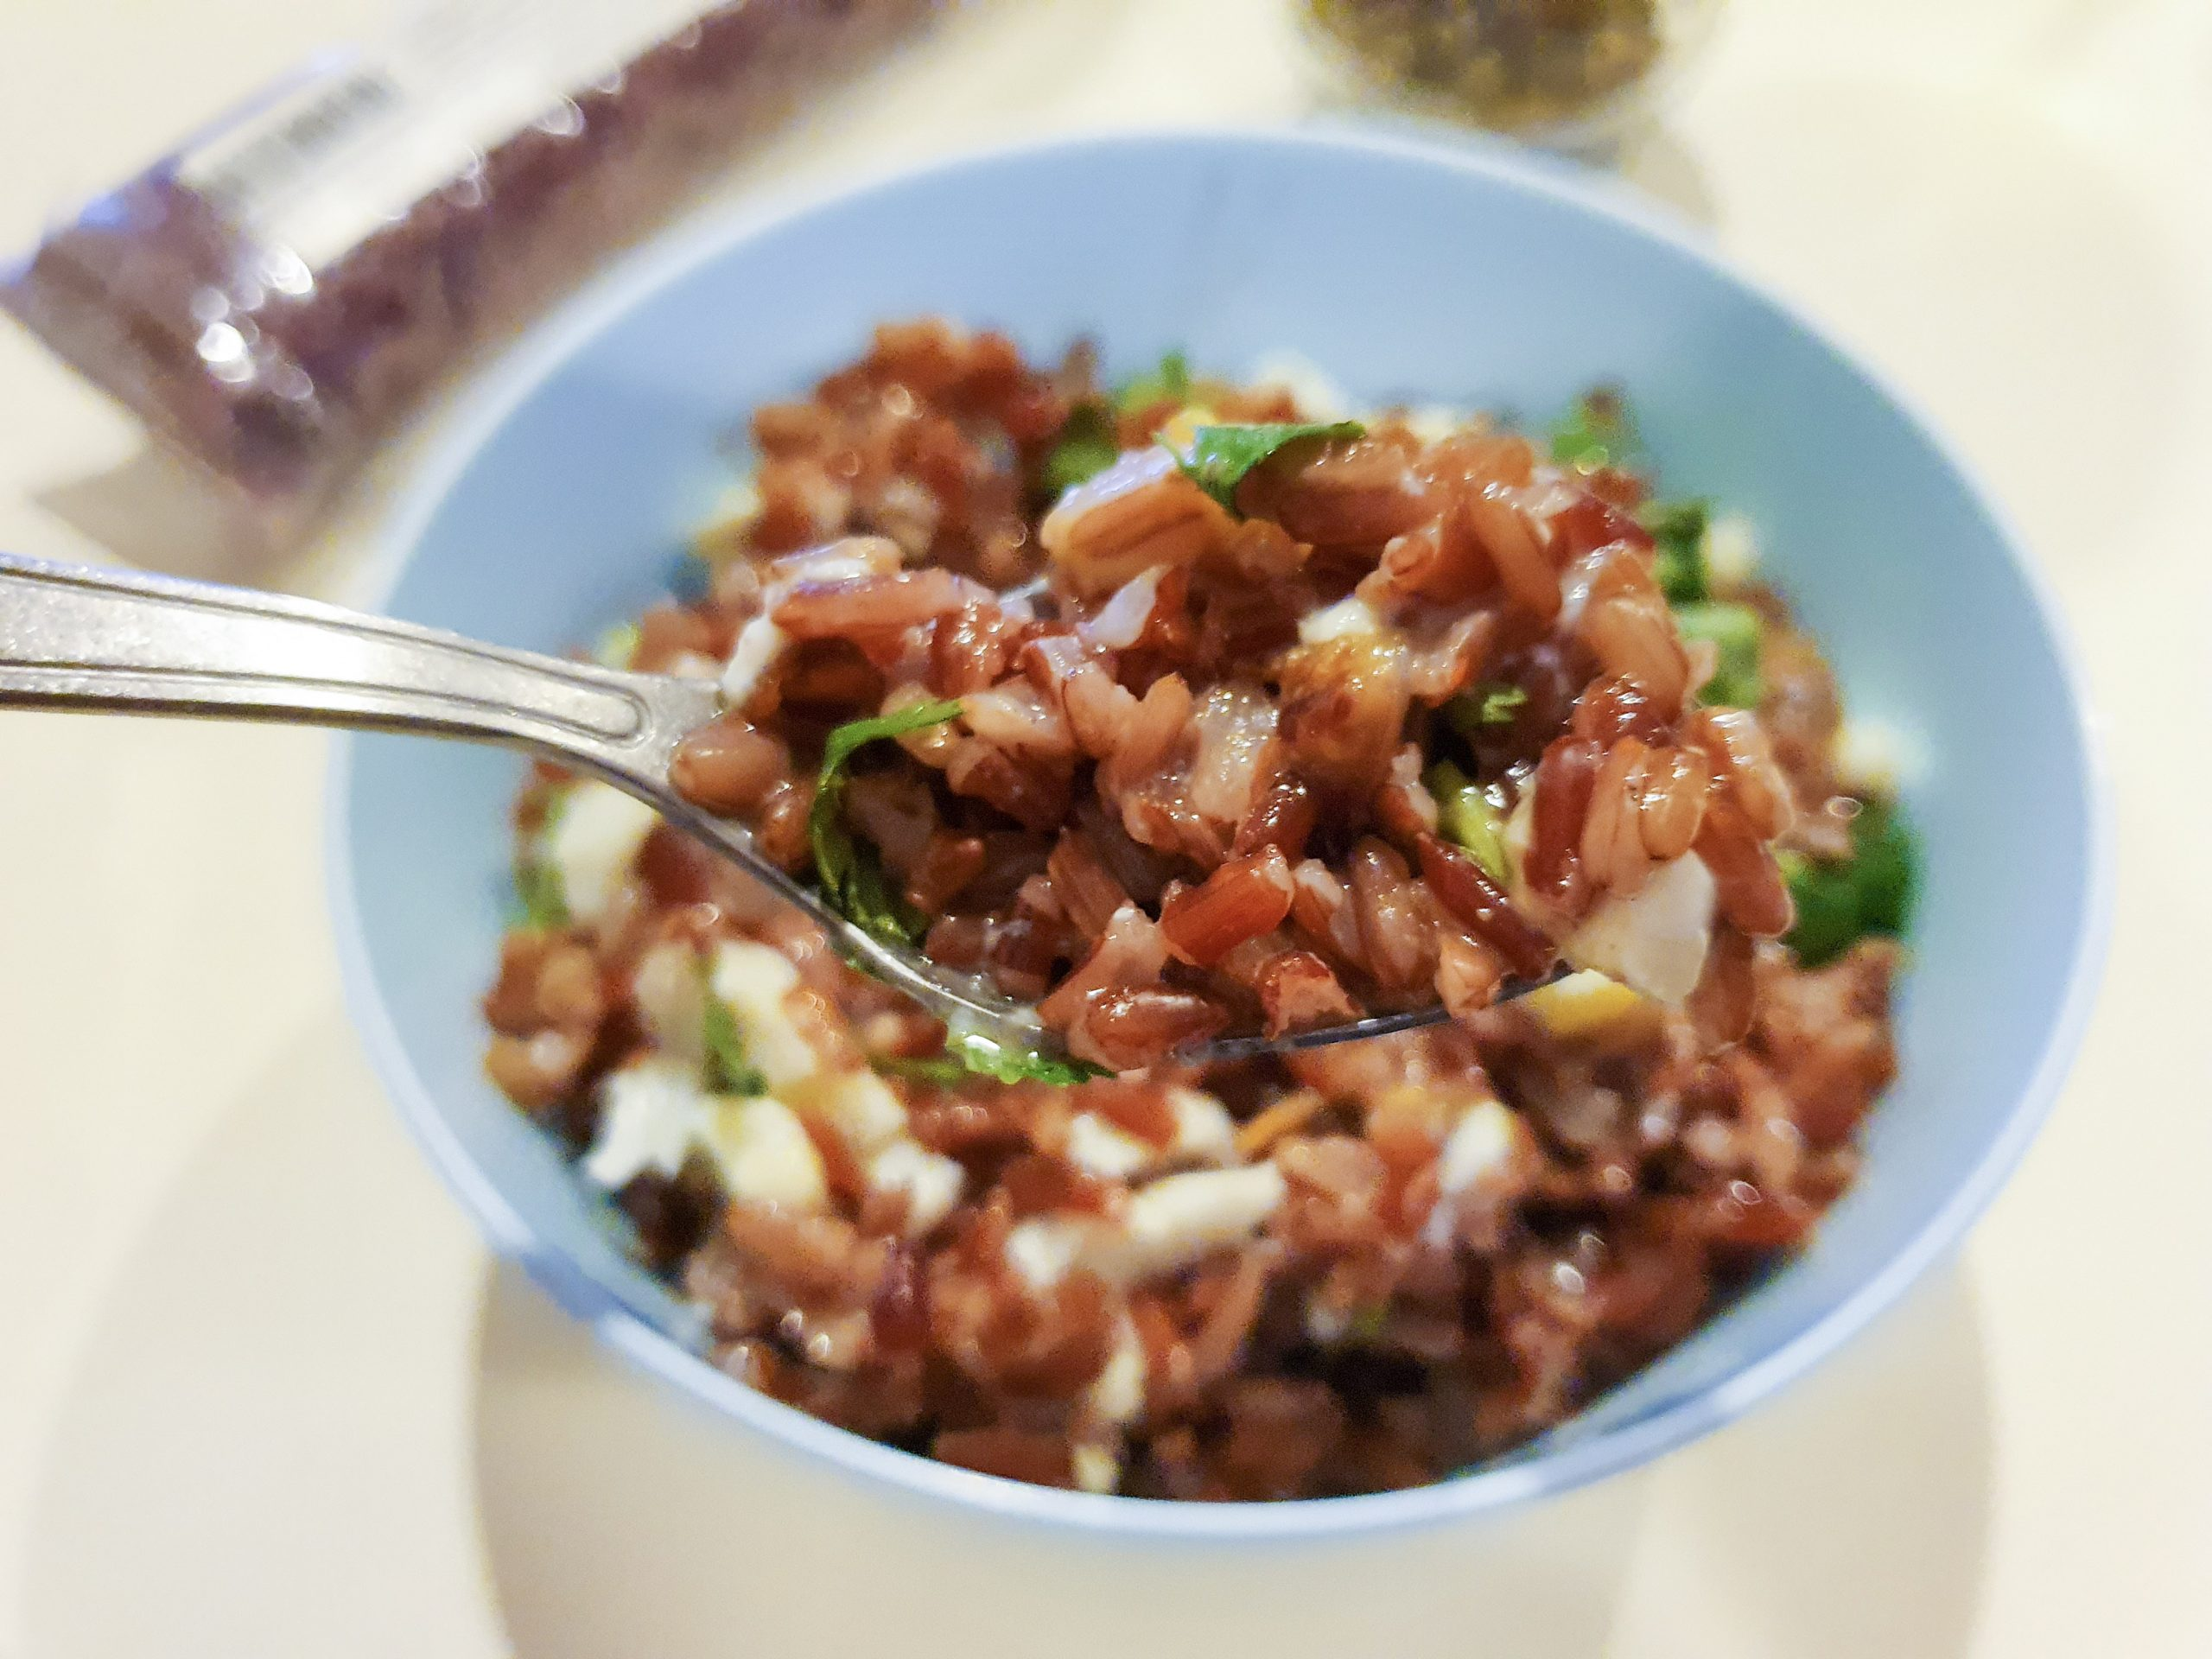 Close up image of a spoonful of Red rice porridge